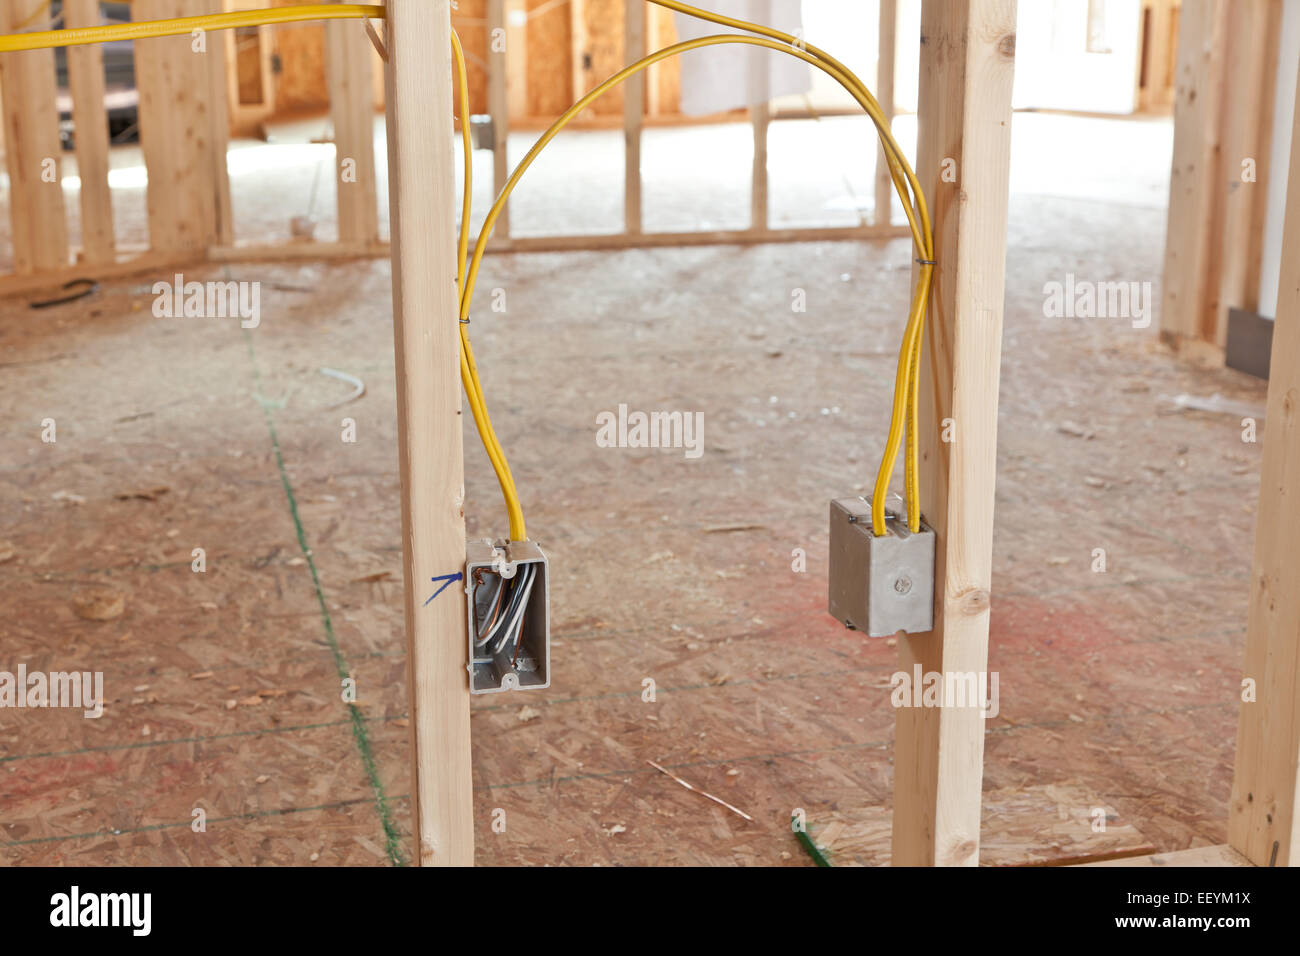 electrical wiring in new home construction stock photo 78055094 alamy rh alamy com wiring new construction house wiring new construction simplified